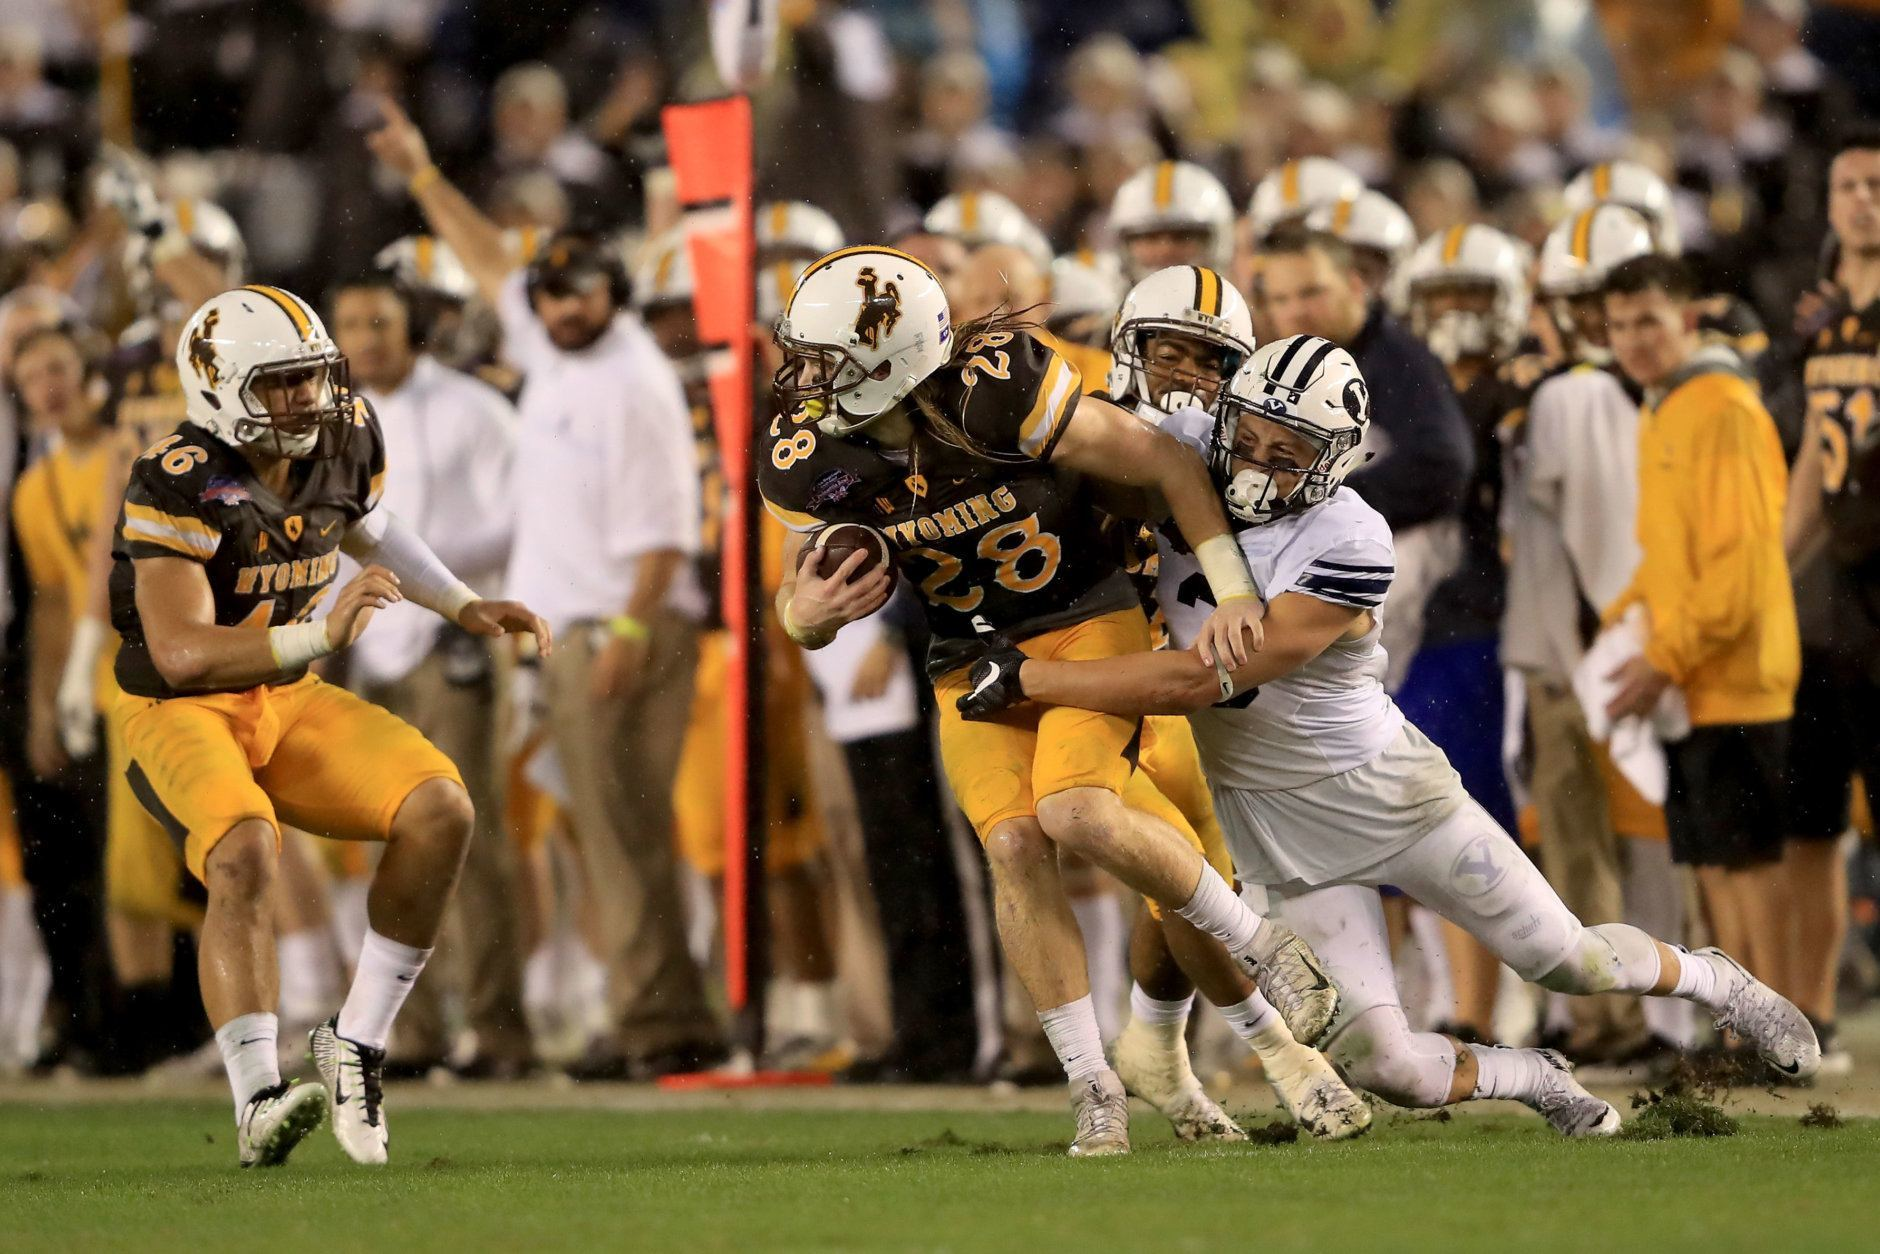 SAN DIEGO, CA - DECEMBER 21:  Andrew Wingard #28 of the Wyoming Cowboys intercepts a pass intended for Colby Pearson #3 of the Brigham Young Cougars  during the first half of  the Poinsettia Bowl at Qualcomm Stadium on December 21, 2016 in San Diego, California.  (Photo by Sean M. Haffey/Getty Images)